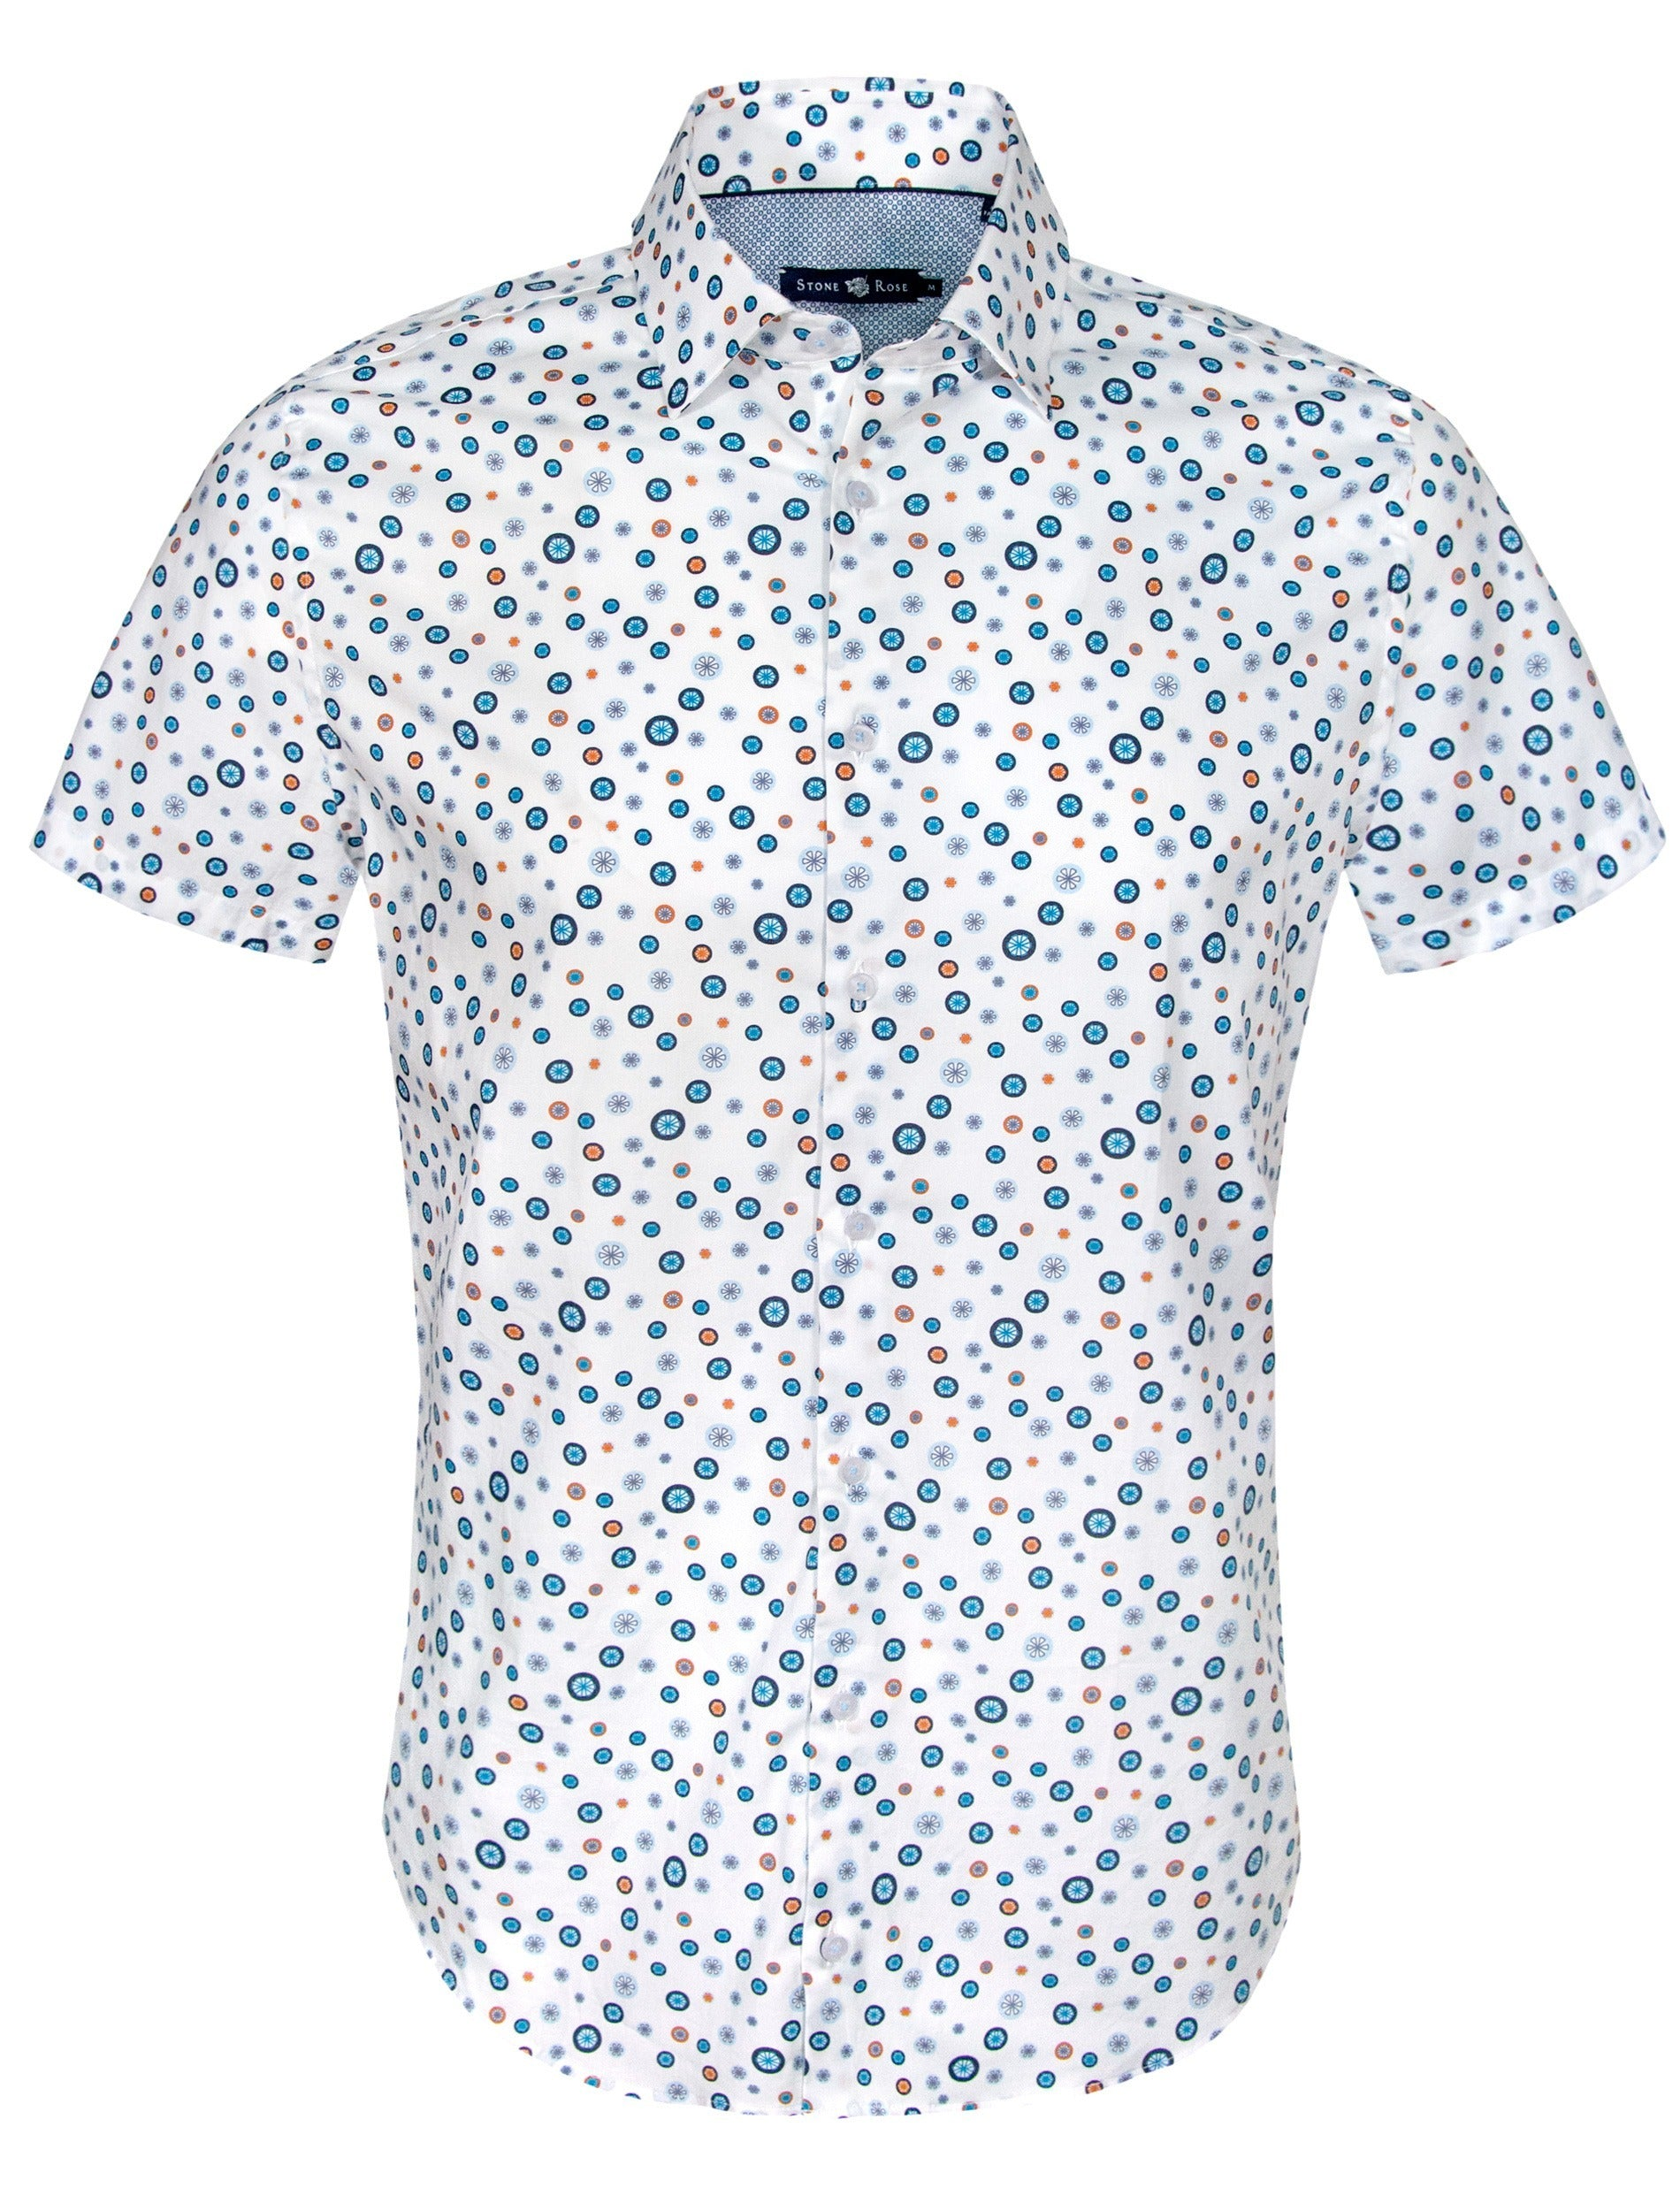 White Circular Print Short Sleeve Shirt